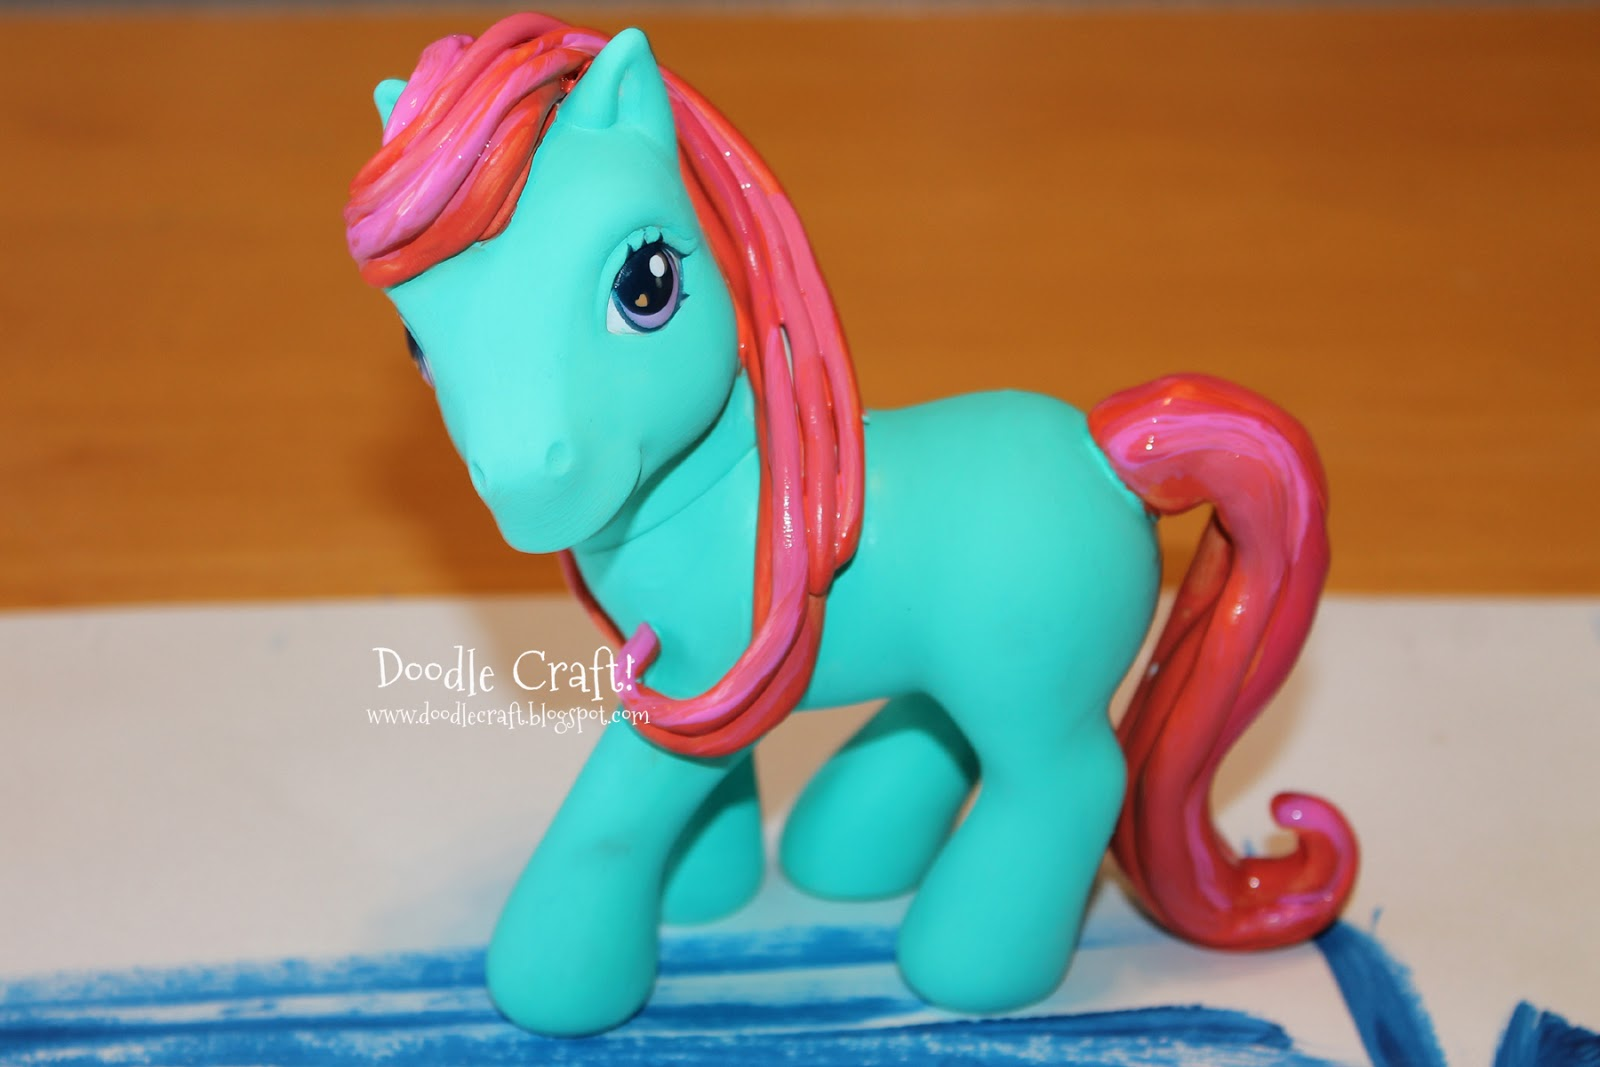 My little pony body drawing doodle craft design and draw your - My Little Pony Body Drawing Doodle Craft Design And Draw Your 48